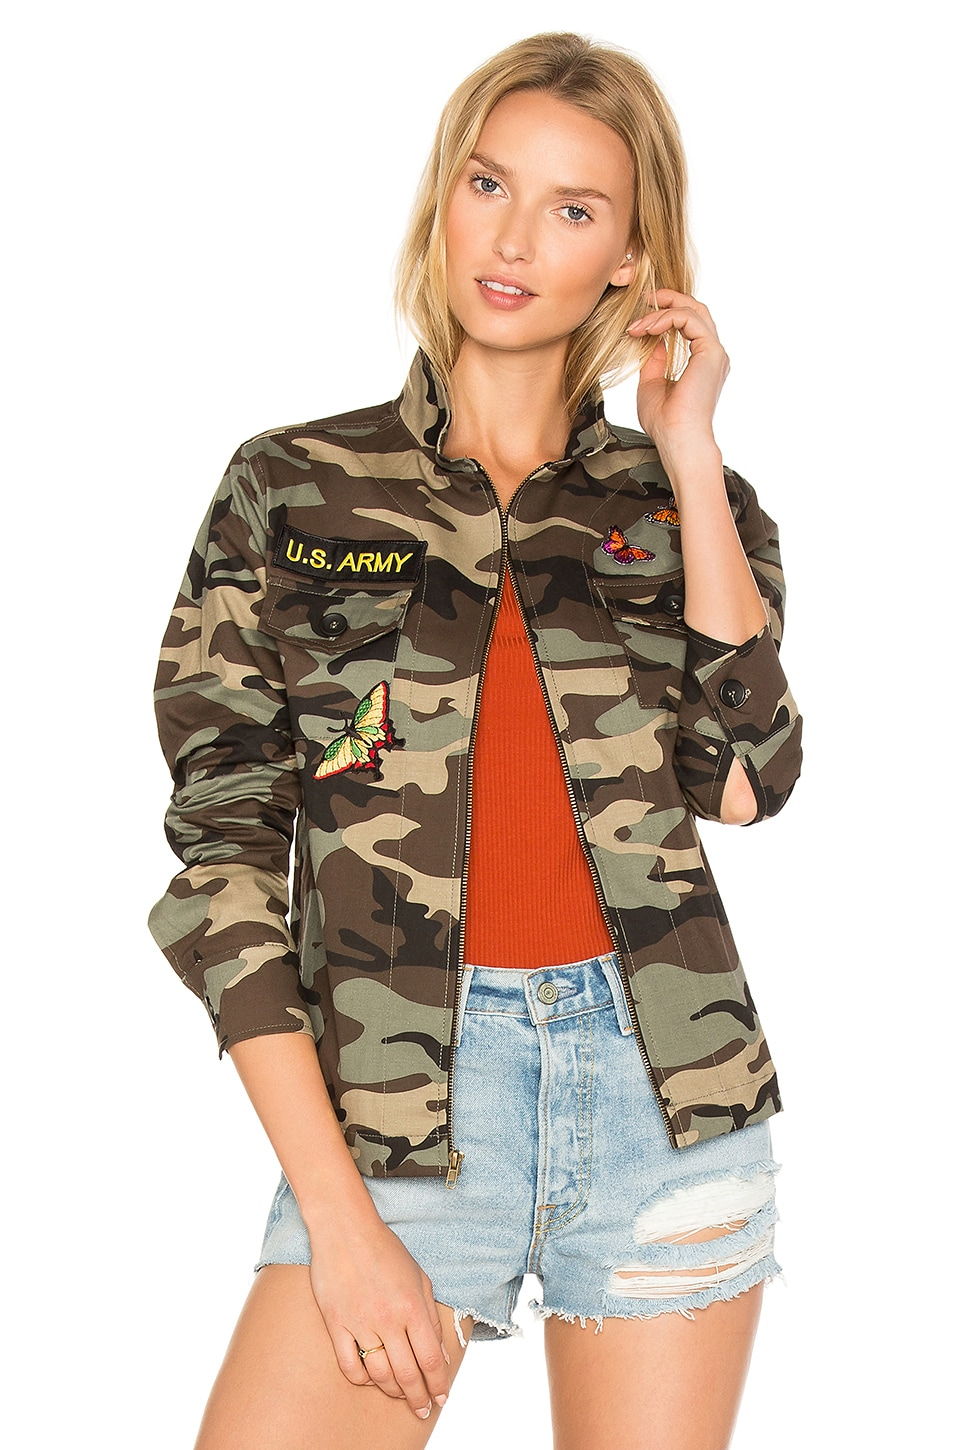 Camo Jacket by Jet John Eshaya